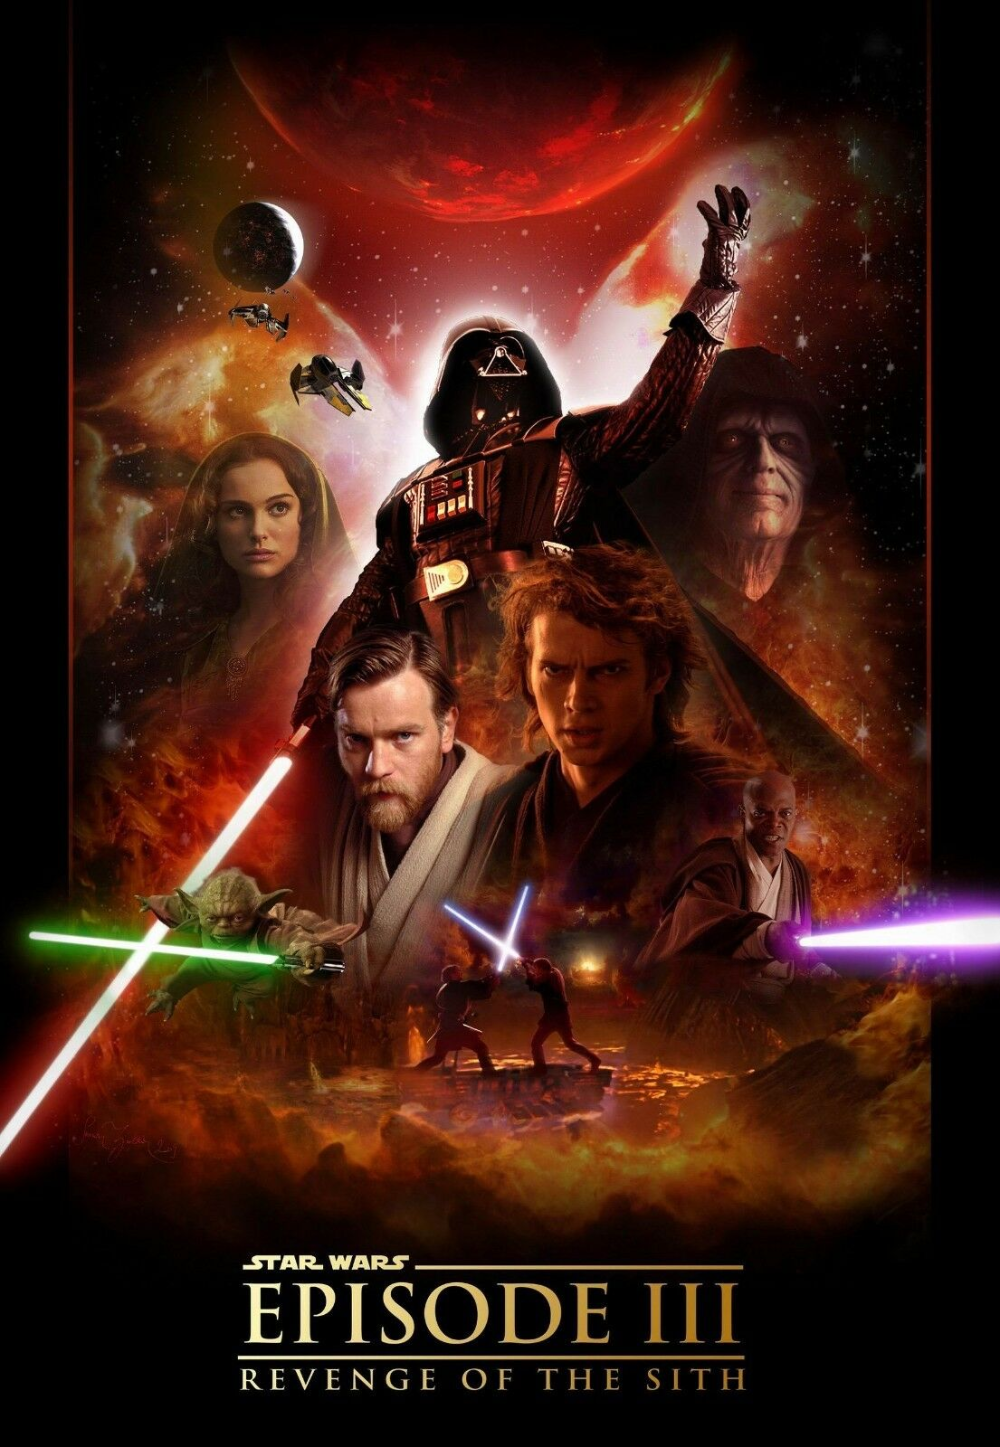 Details about Star Wars Poster * Revenge of the Sith * Episode III * Reprint * 13 x 19